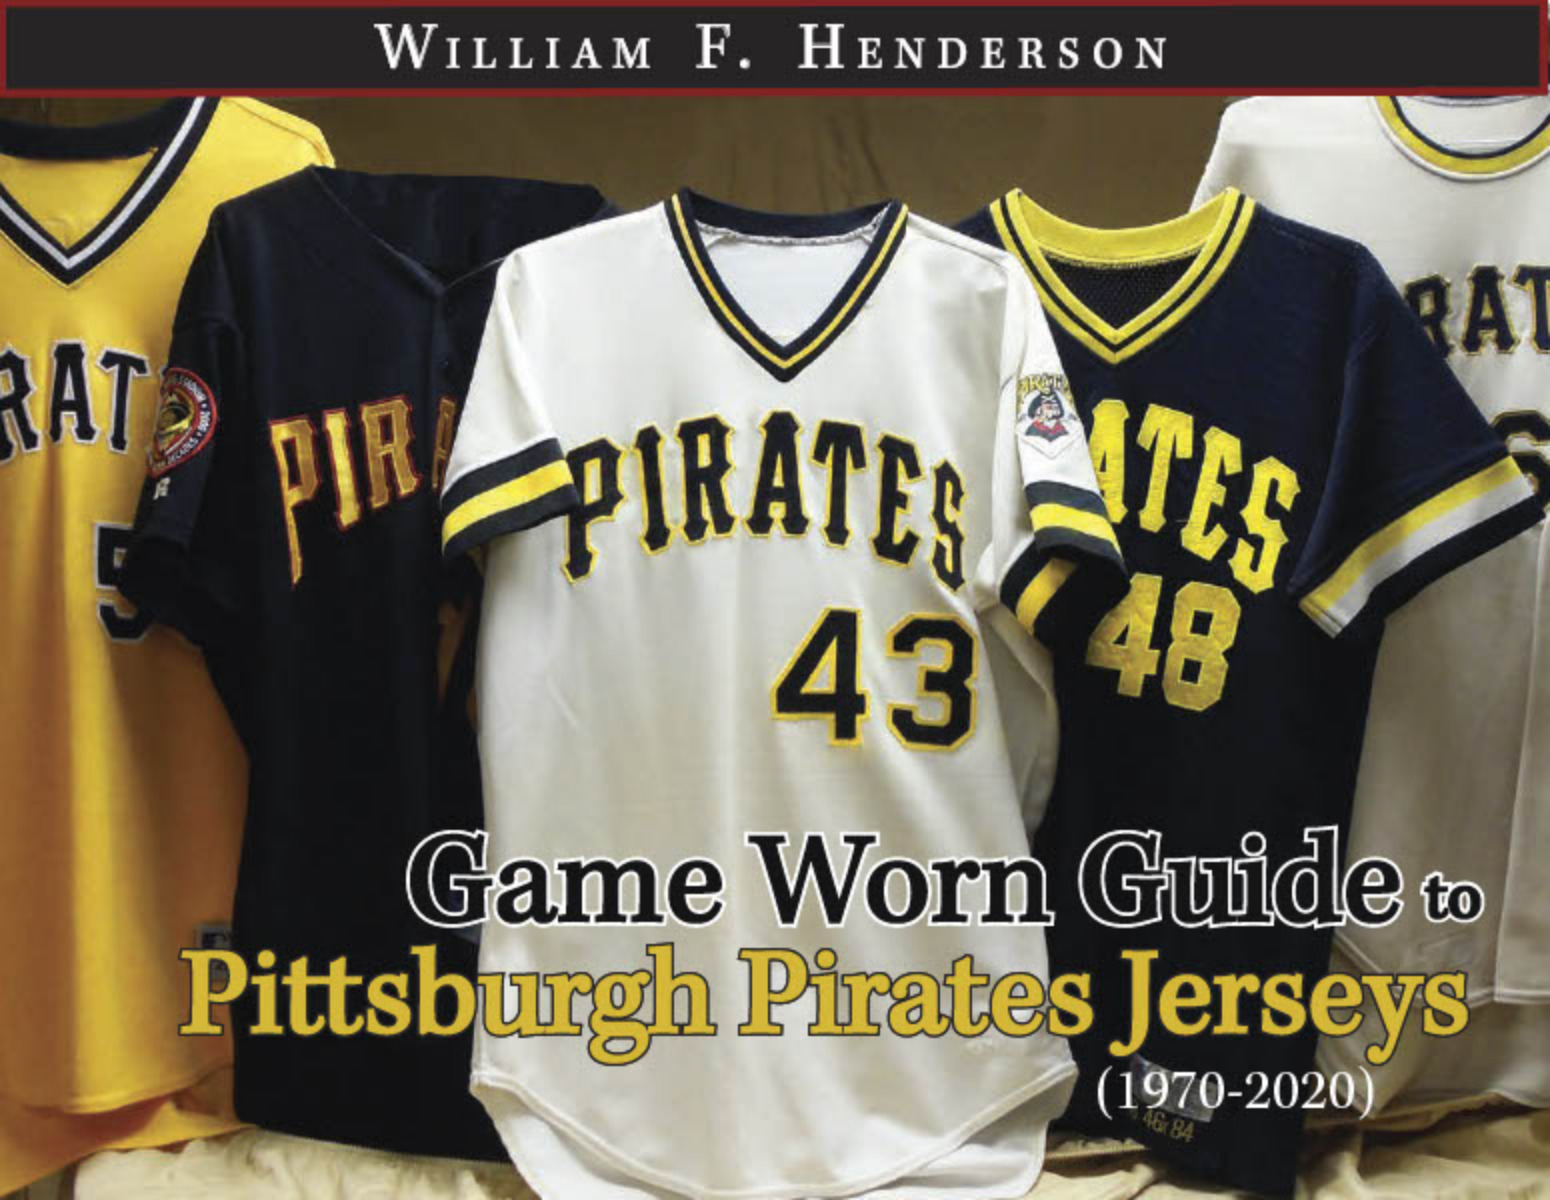 Game Worn Guide to Pittsburgh Pirates Jerseys (1970-2020)